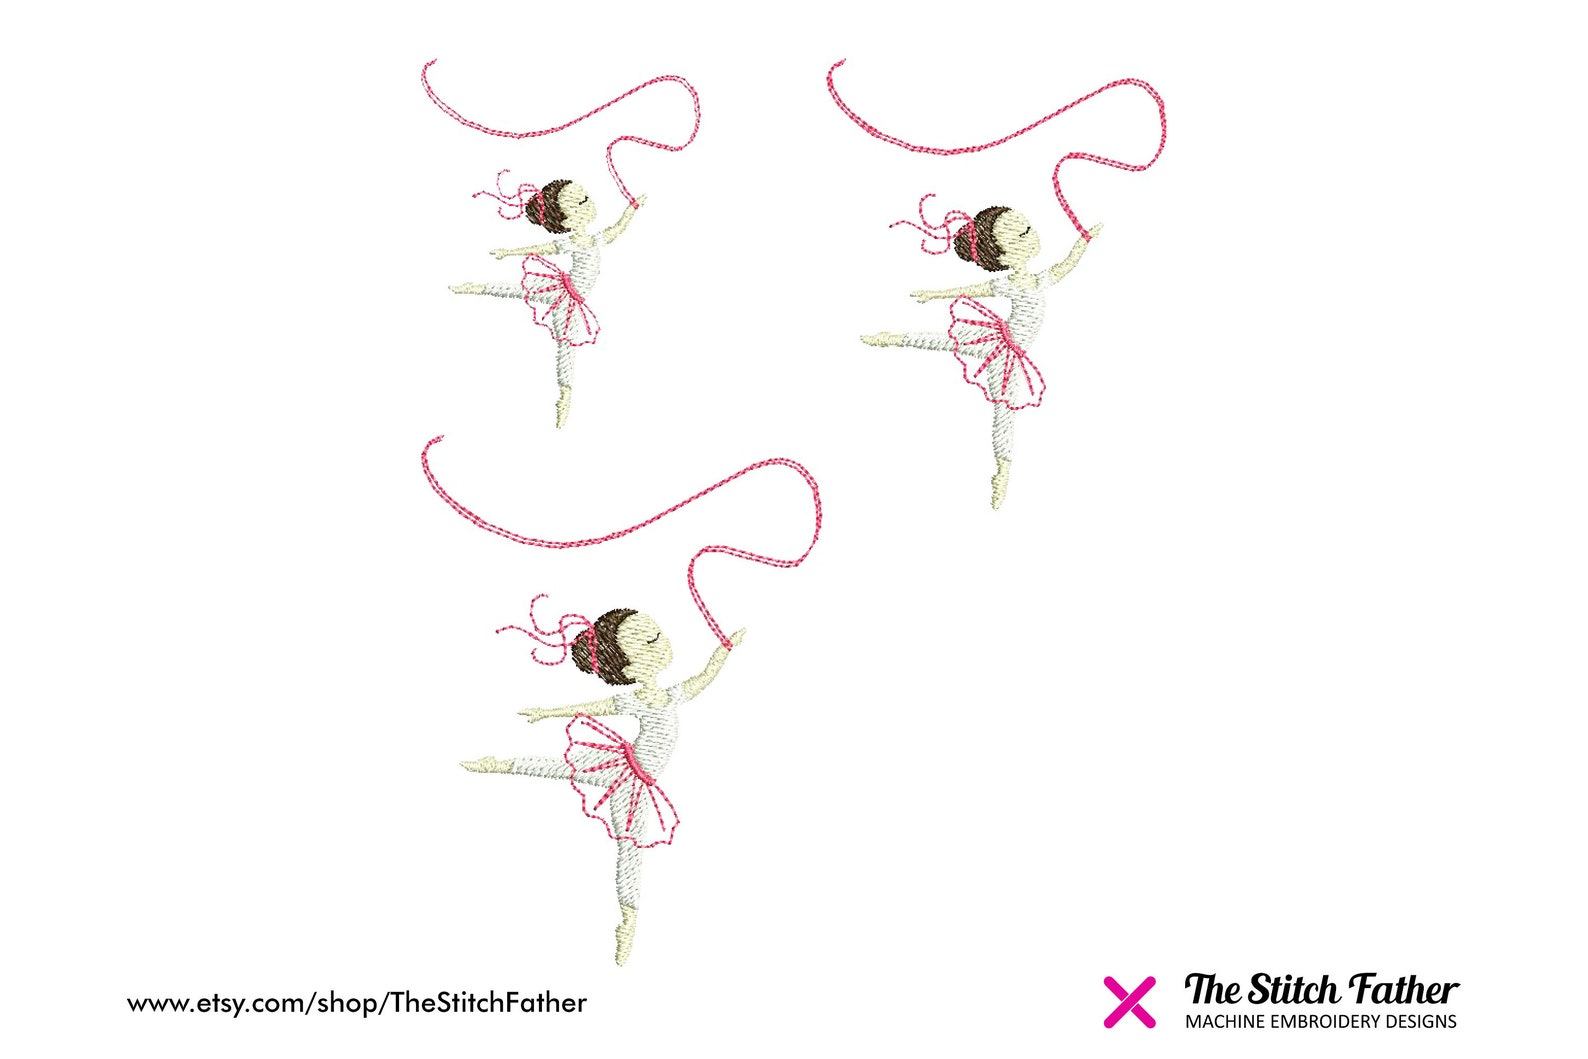 mini dancing set machine embroidery design – ballerina pointe dancers, gymnasts, ballet shoes – girl dance gym embroidery - inst